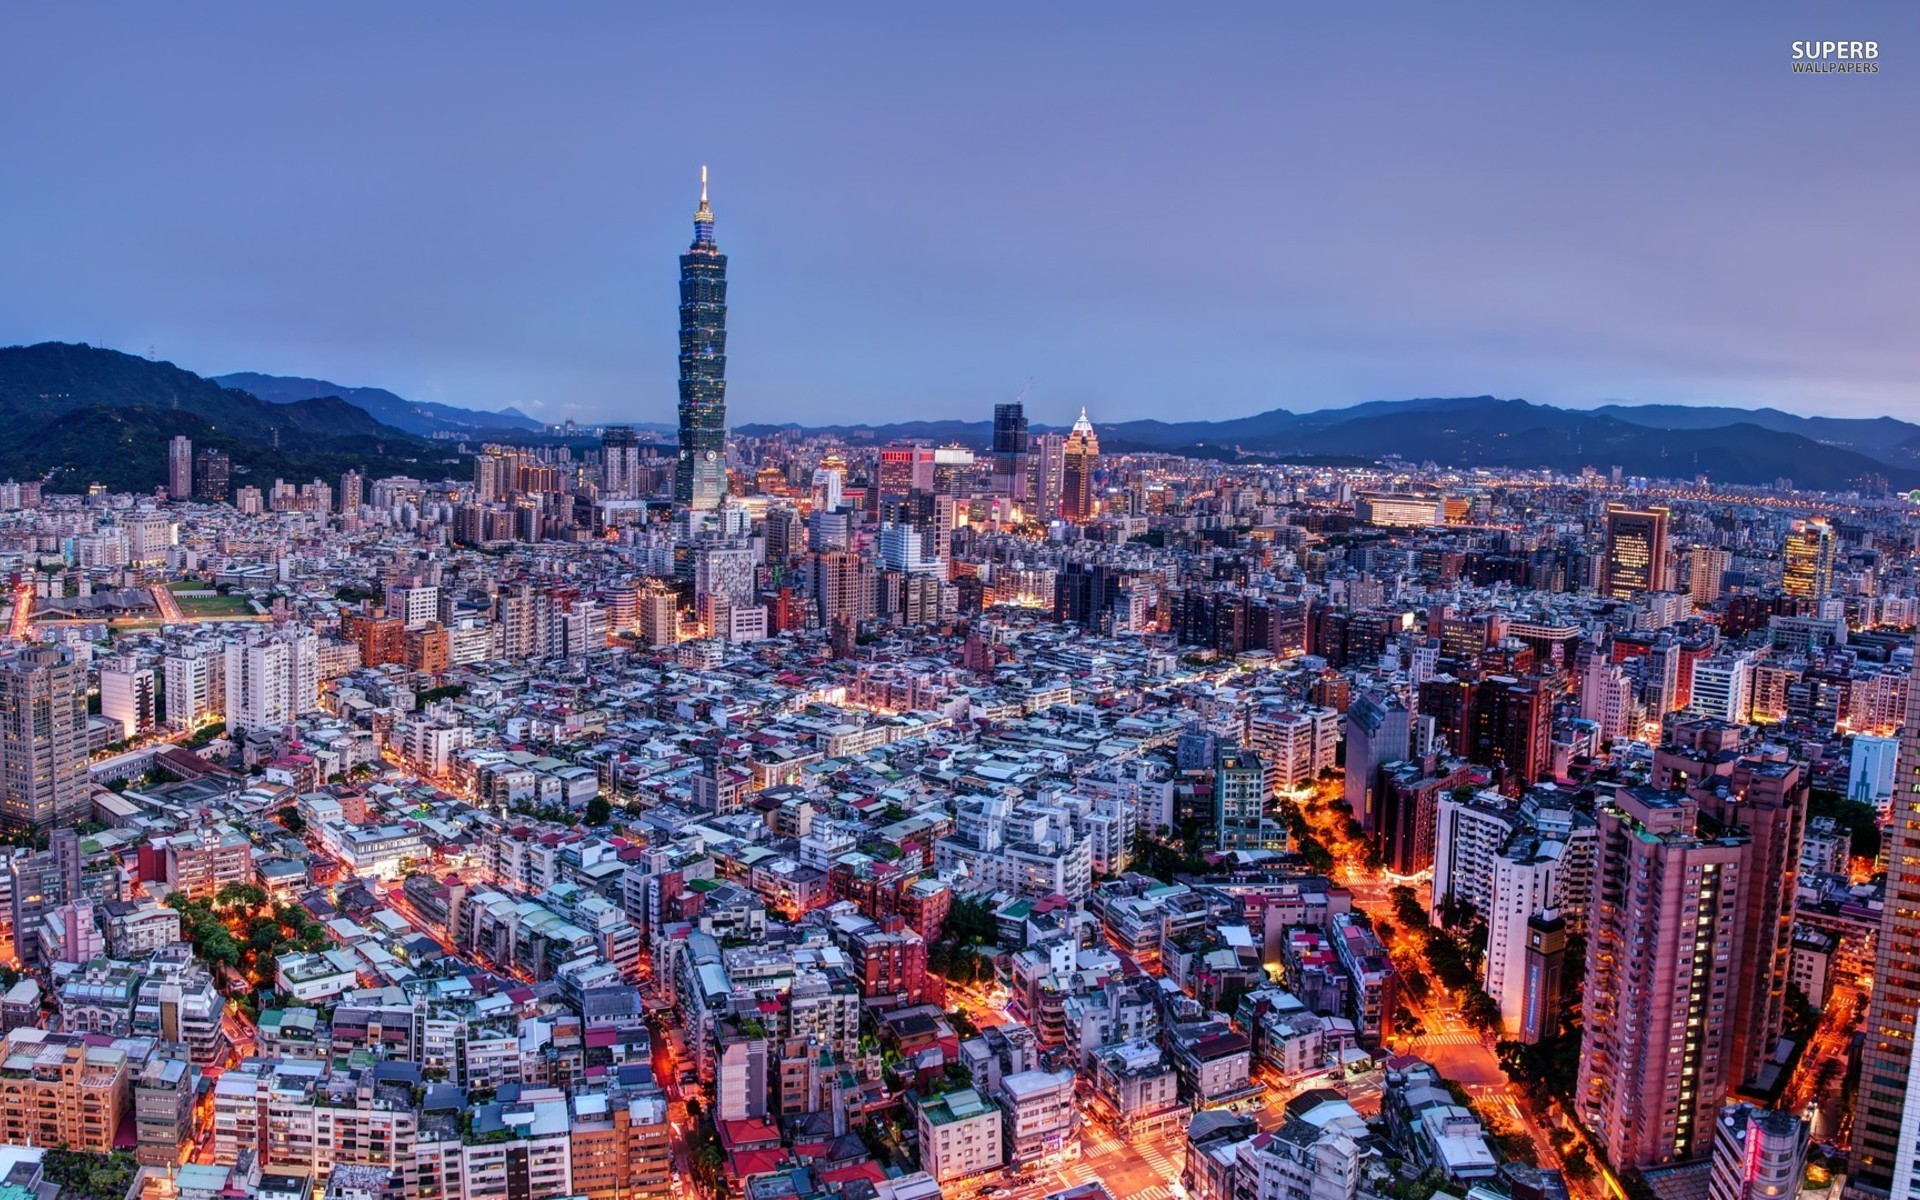 Taipei Taiwan  City pictures : Taipei Taiwan wallpapers | Taipei Taiwan stock photos